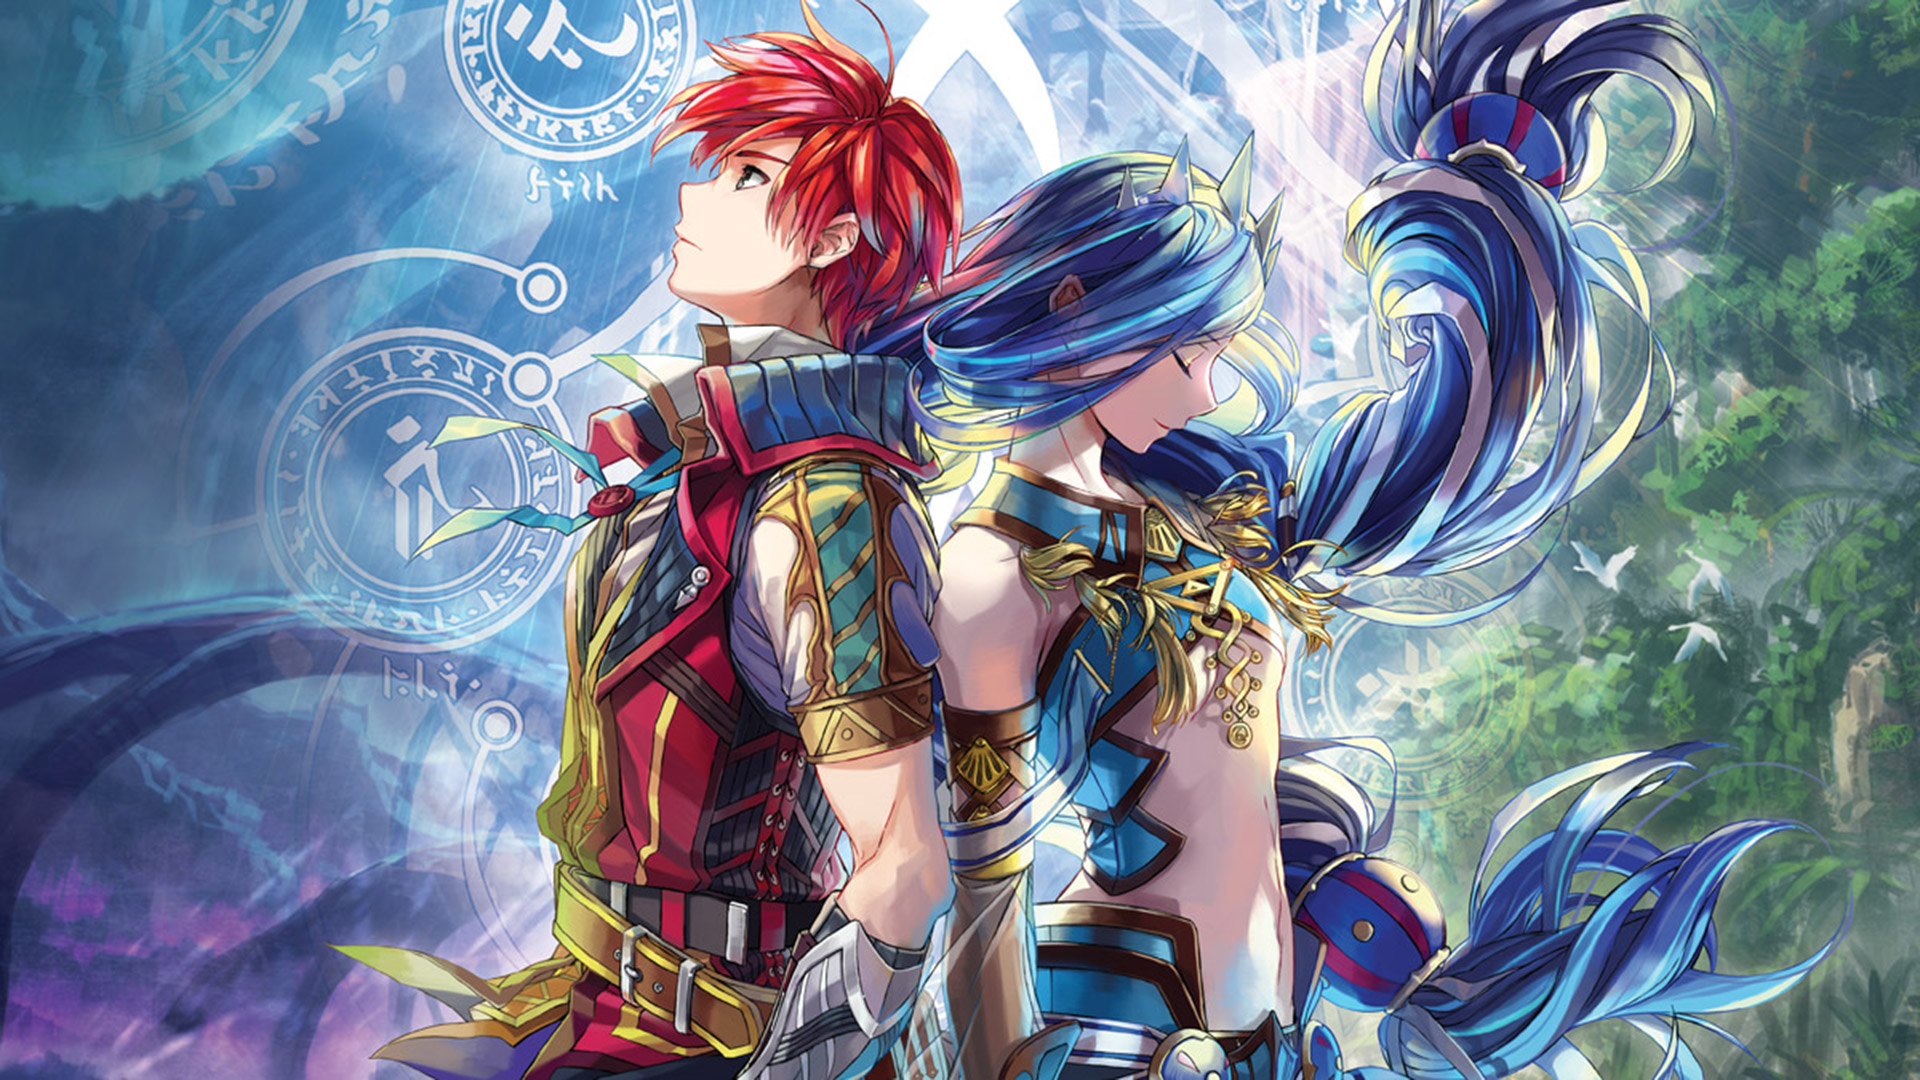 Ys Viii Lacrimosa Of Dana Wallpaper 01 1920x1080